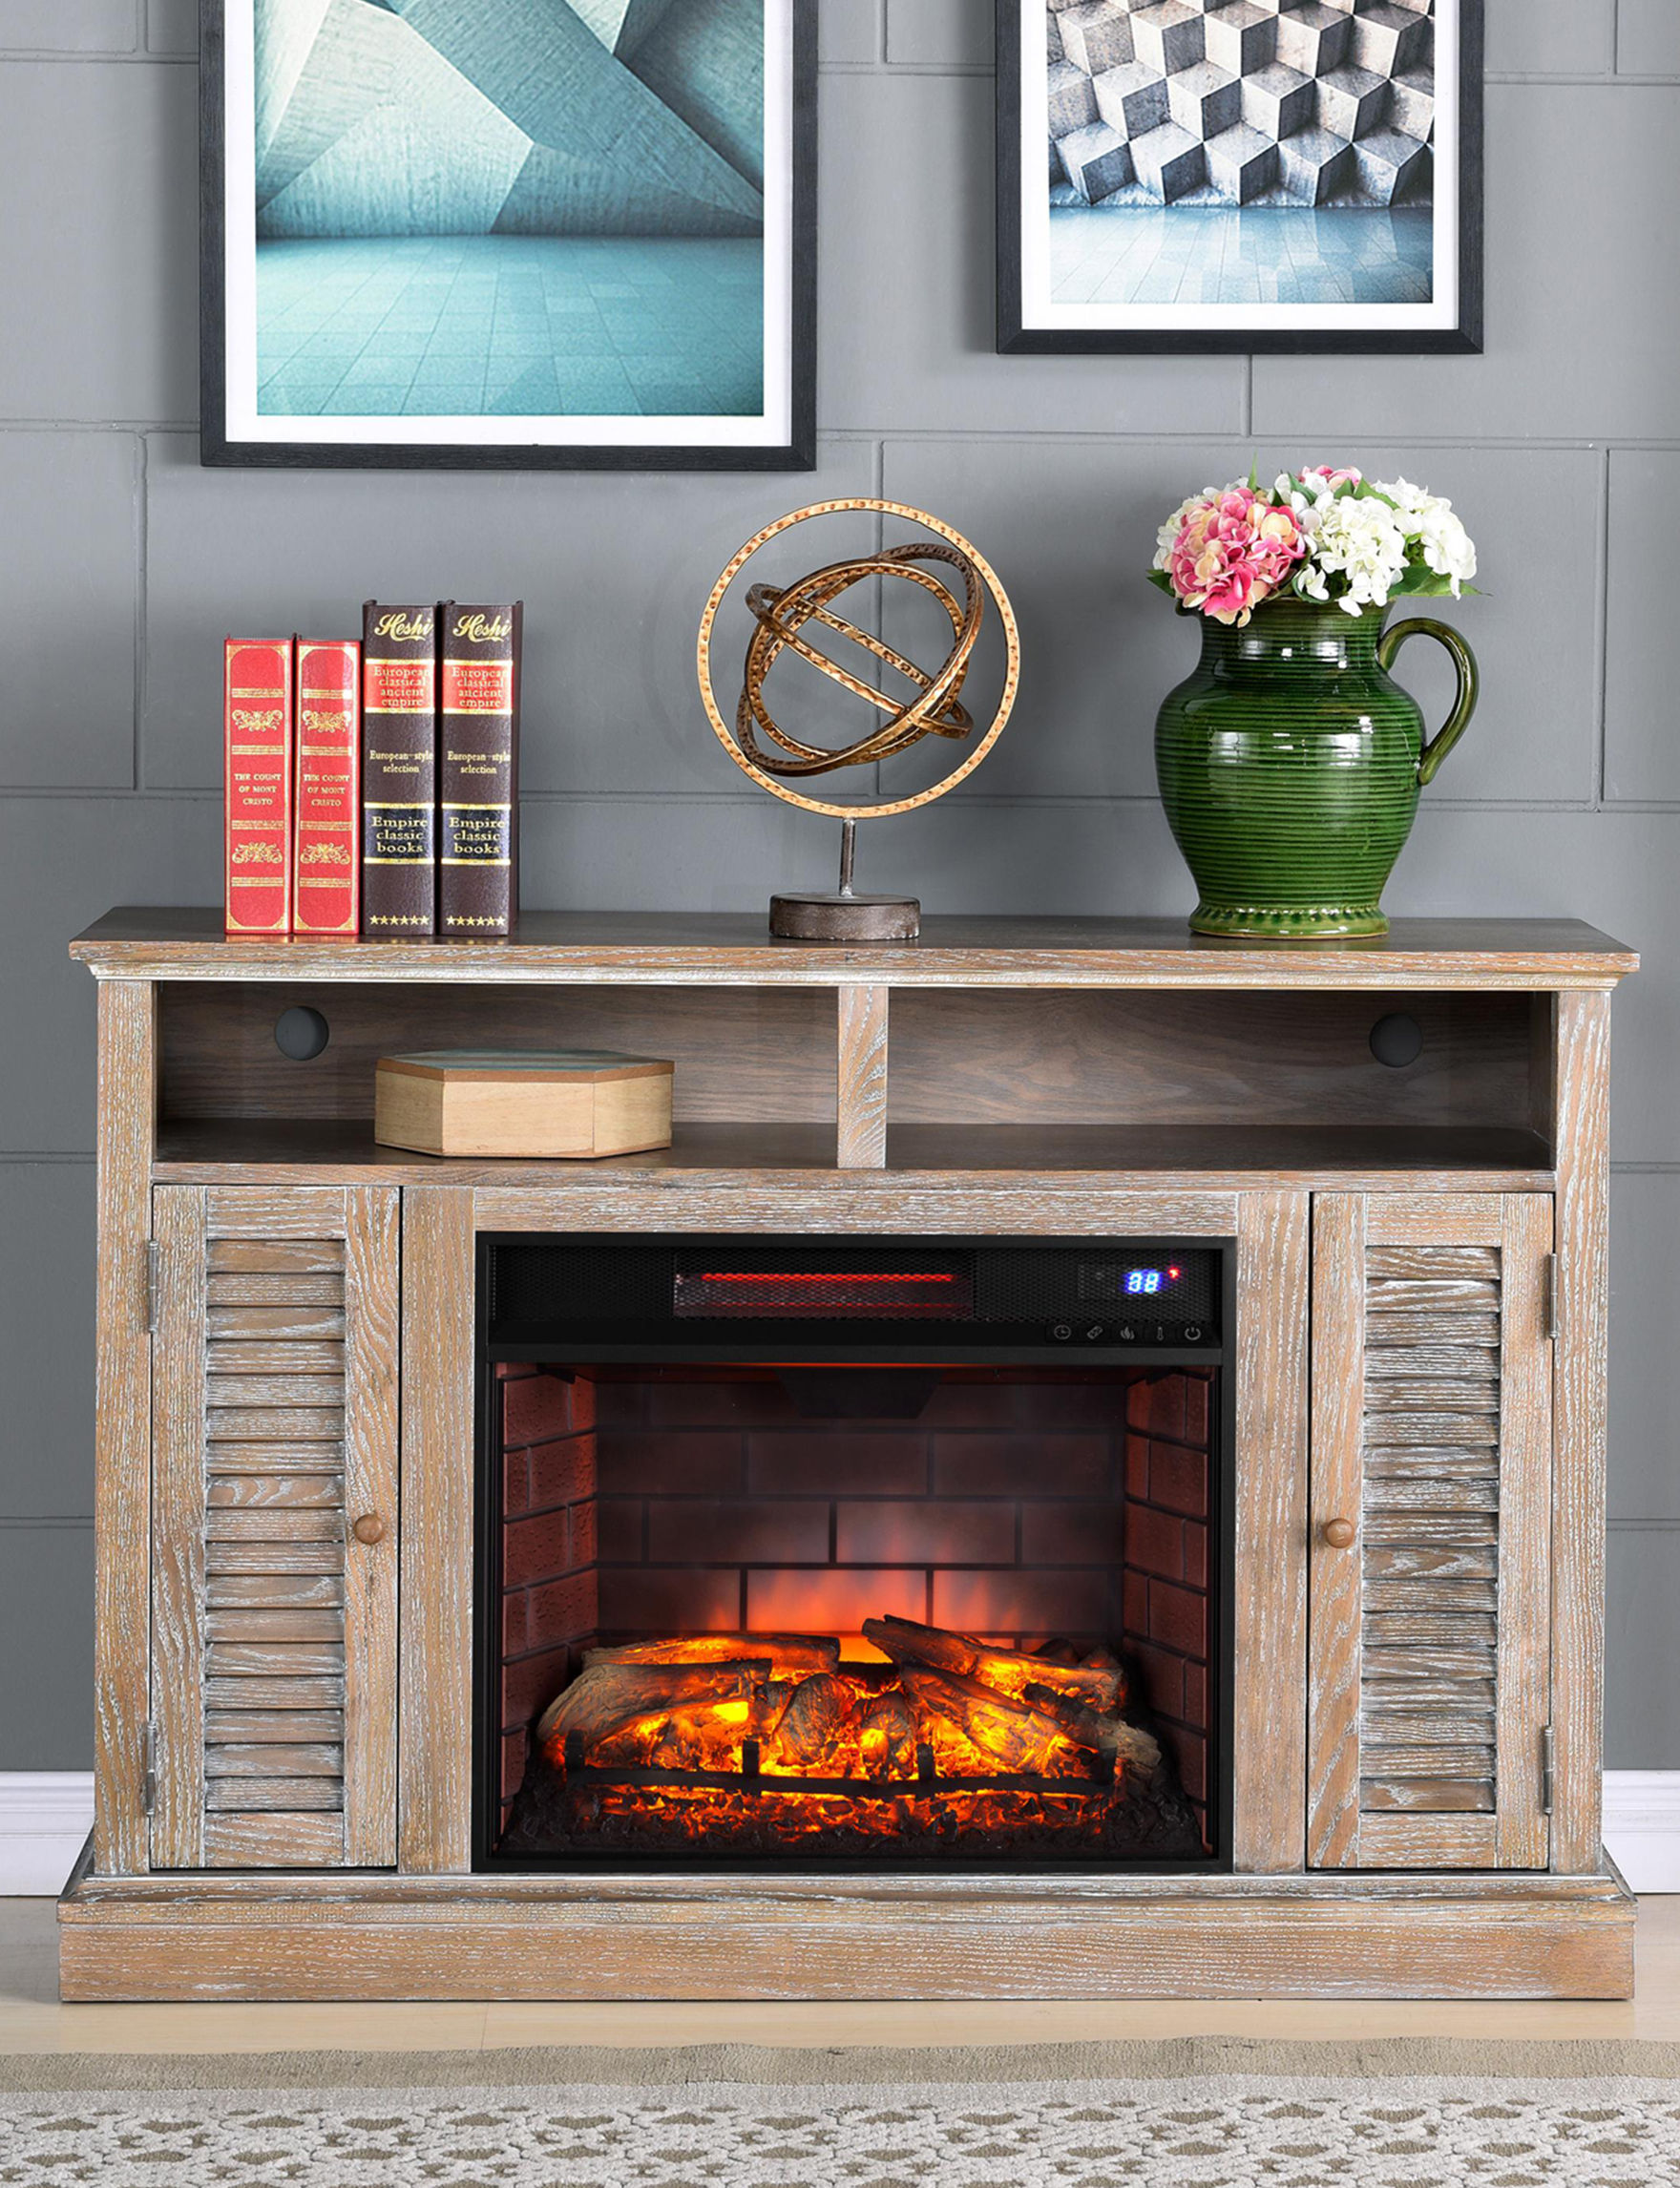 Southern Enterprises Natural TV Stands & Entertainment Centers Game Room Living Room Furniture